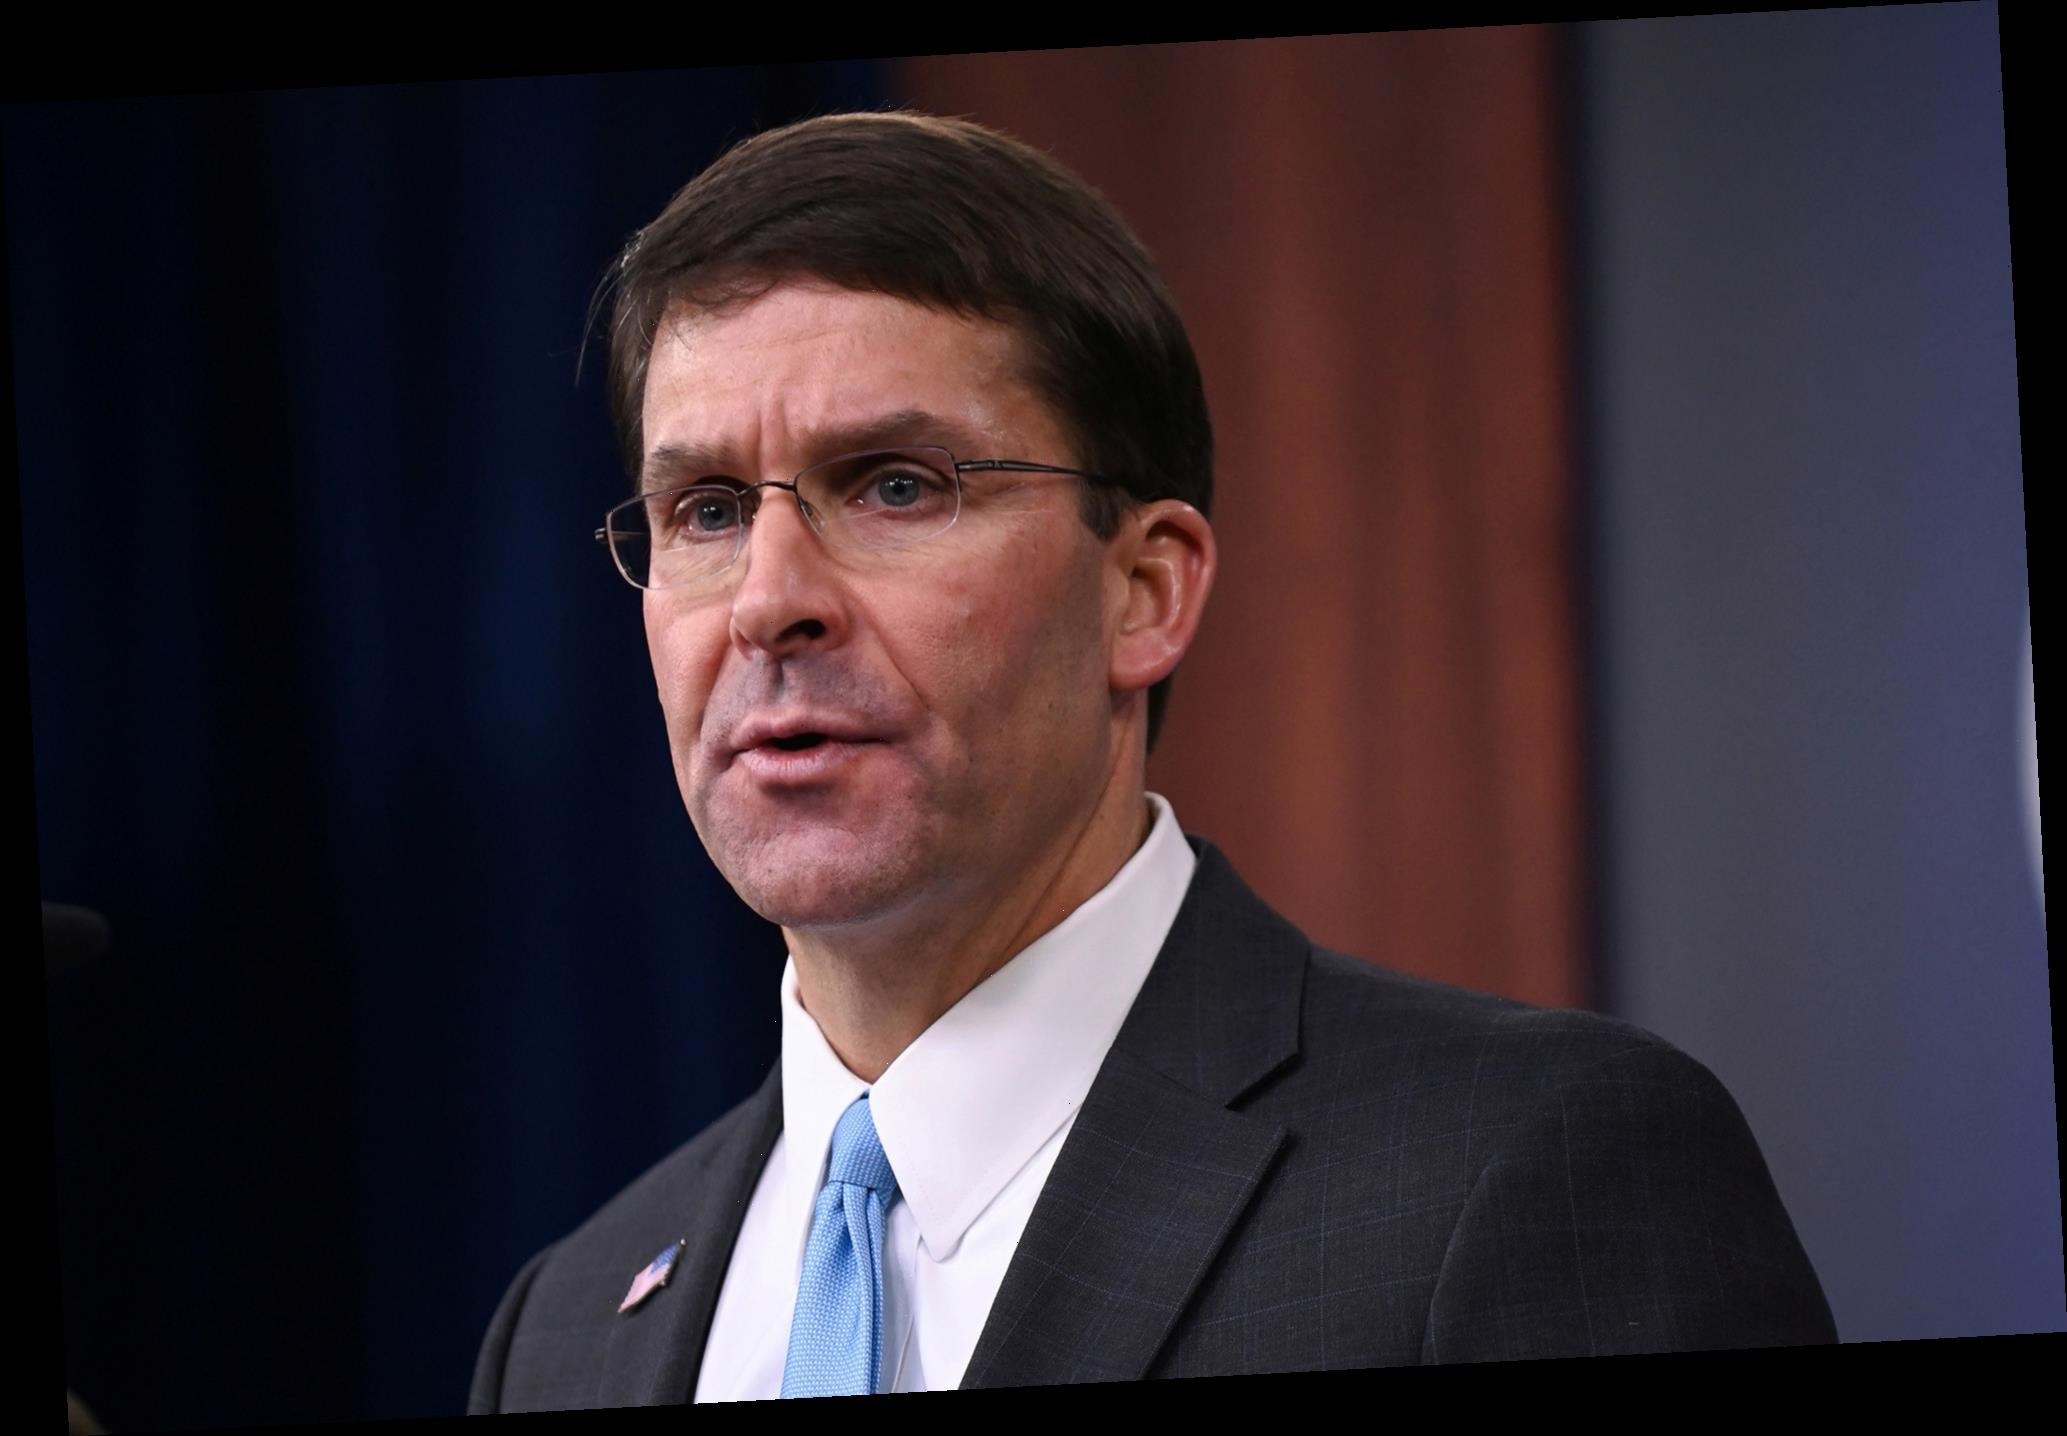 Defense Secretary Mark Esper says small US force may remain in Syria to curb ISIS activity